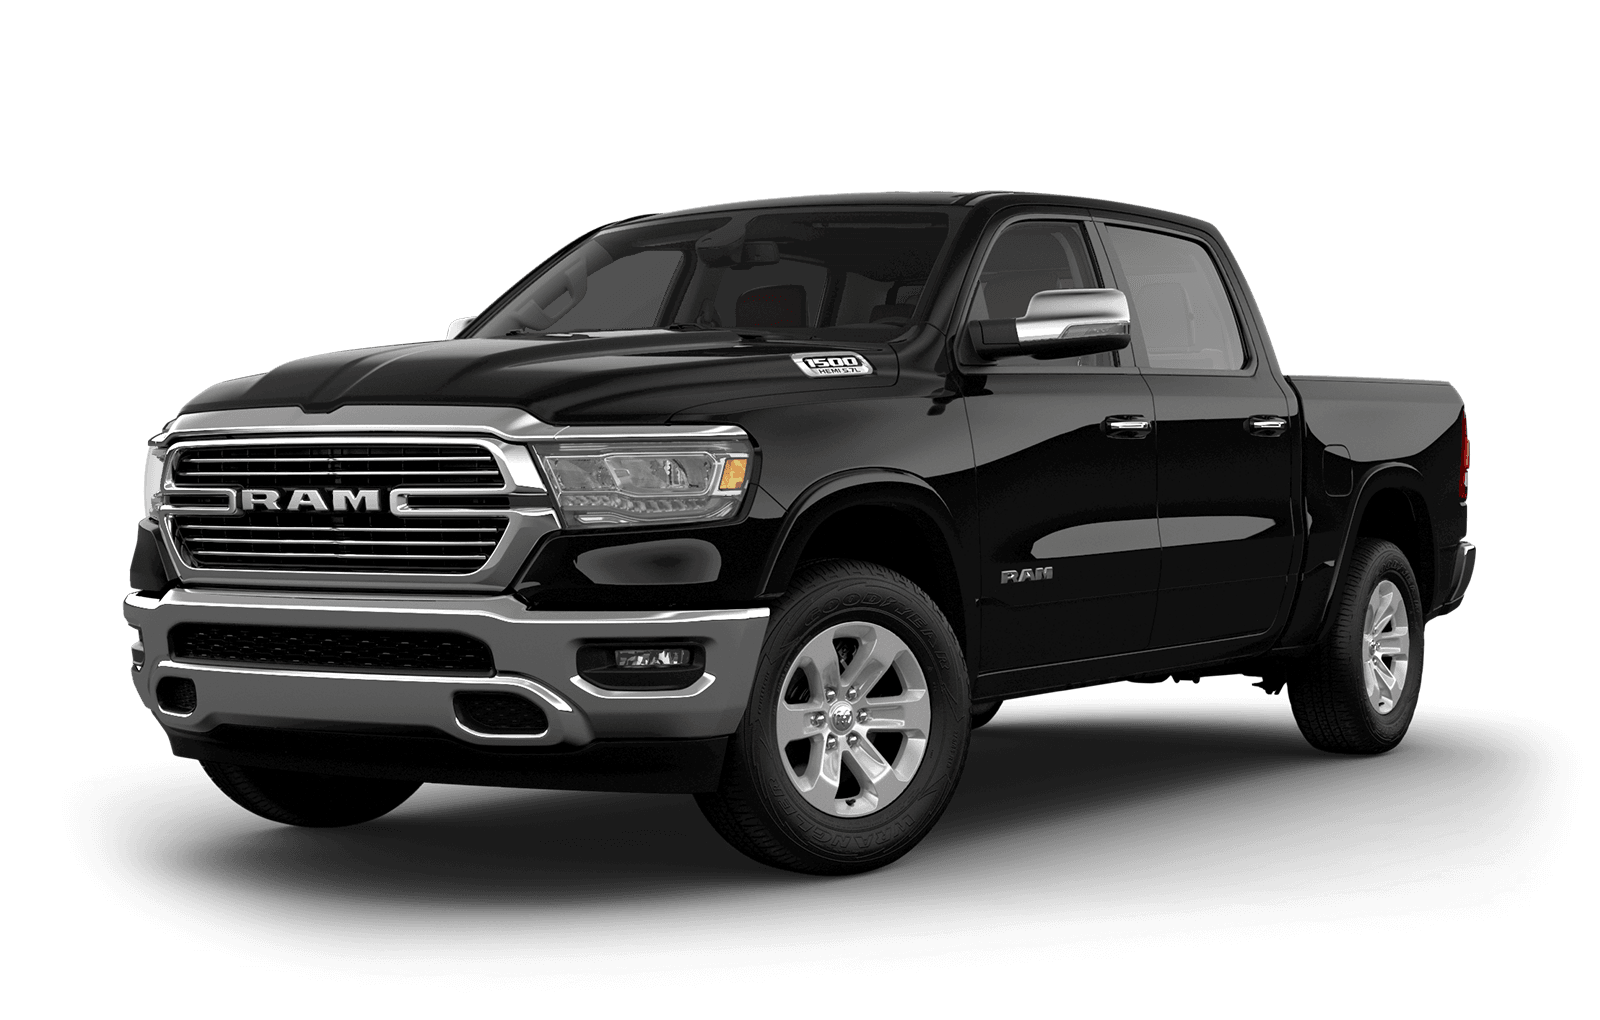 2019 Ram 1500 colour Diamond Black Crystal Pearl